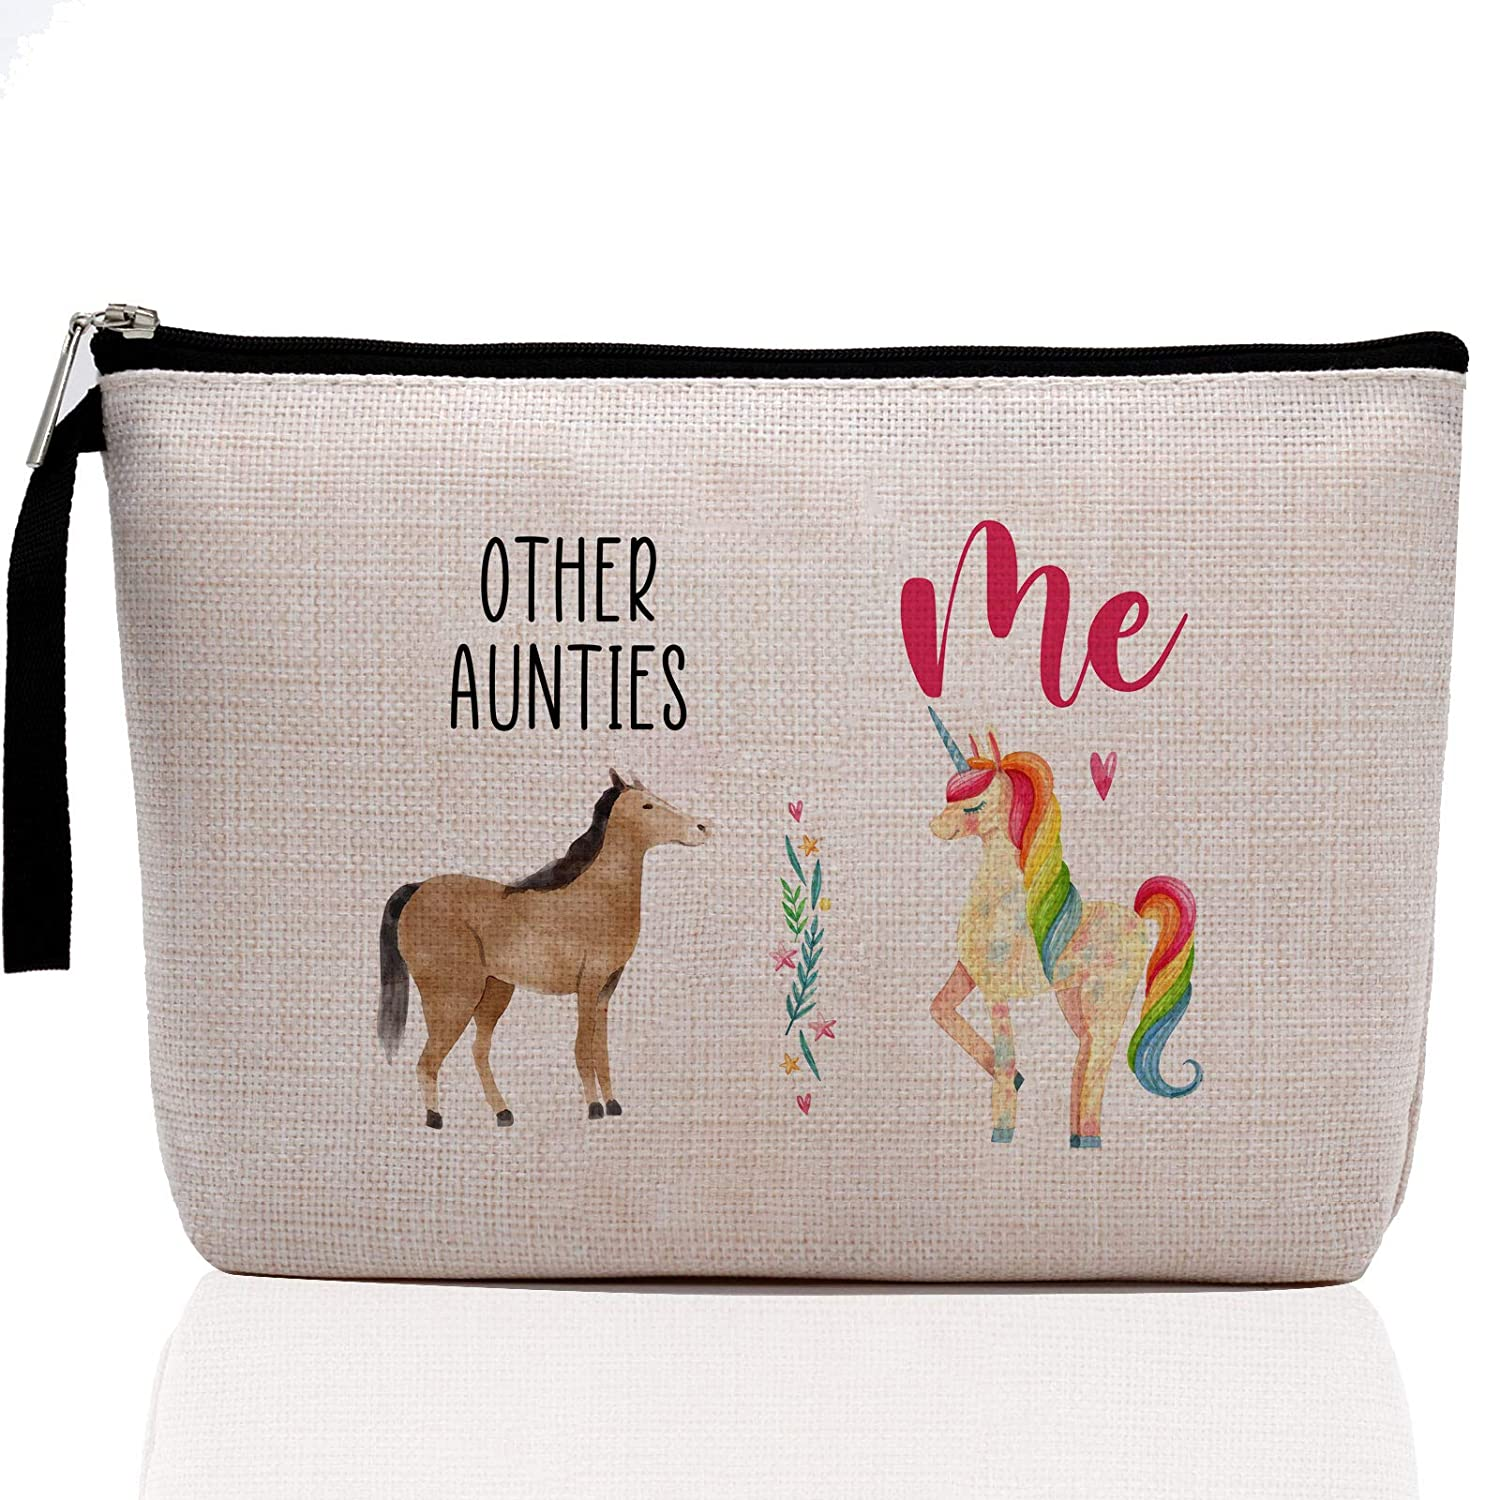 Funny Aunt Gifts, Auntie Gifts from Niece, Nephew, Best Aunt Ever, Niece Gifts from Aunt, Funny Gifts for Niece-Other Aunties Horse, Me Unicorn-Makeup Bag